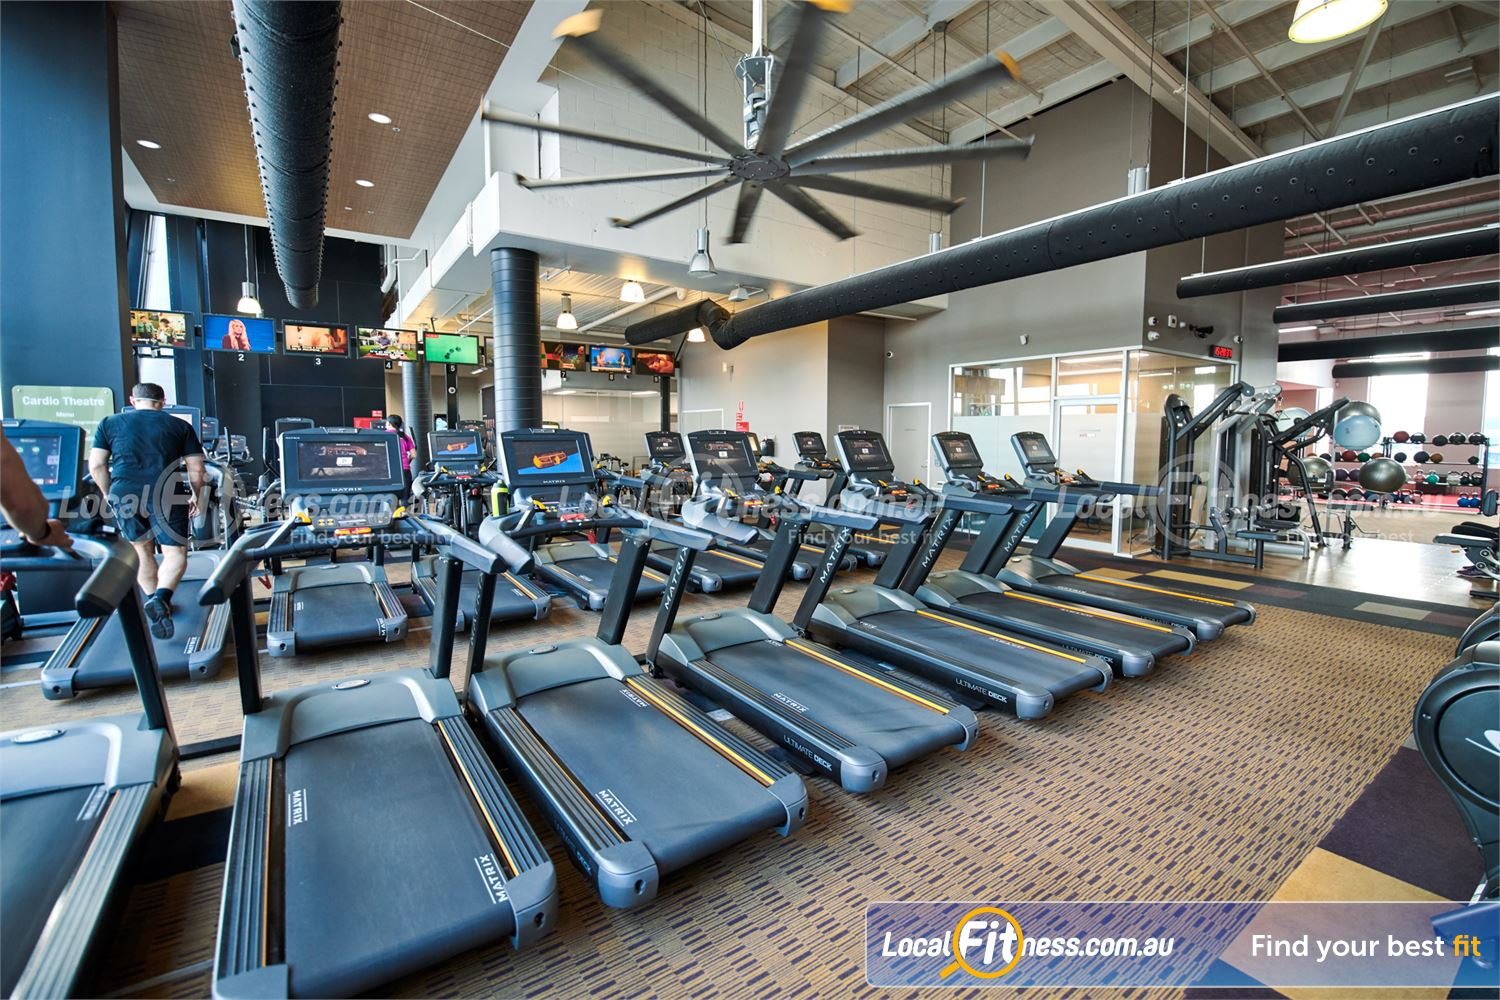 Fitness First Doncaster State of the art MATRIX cardio with personal entertainment screens.